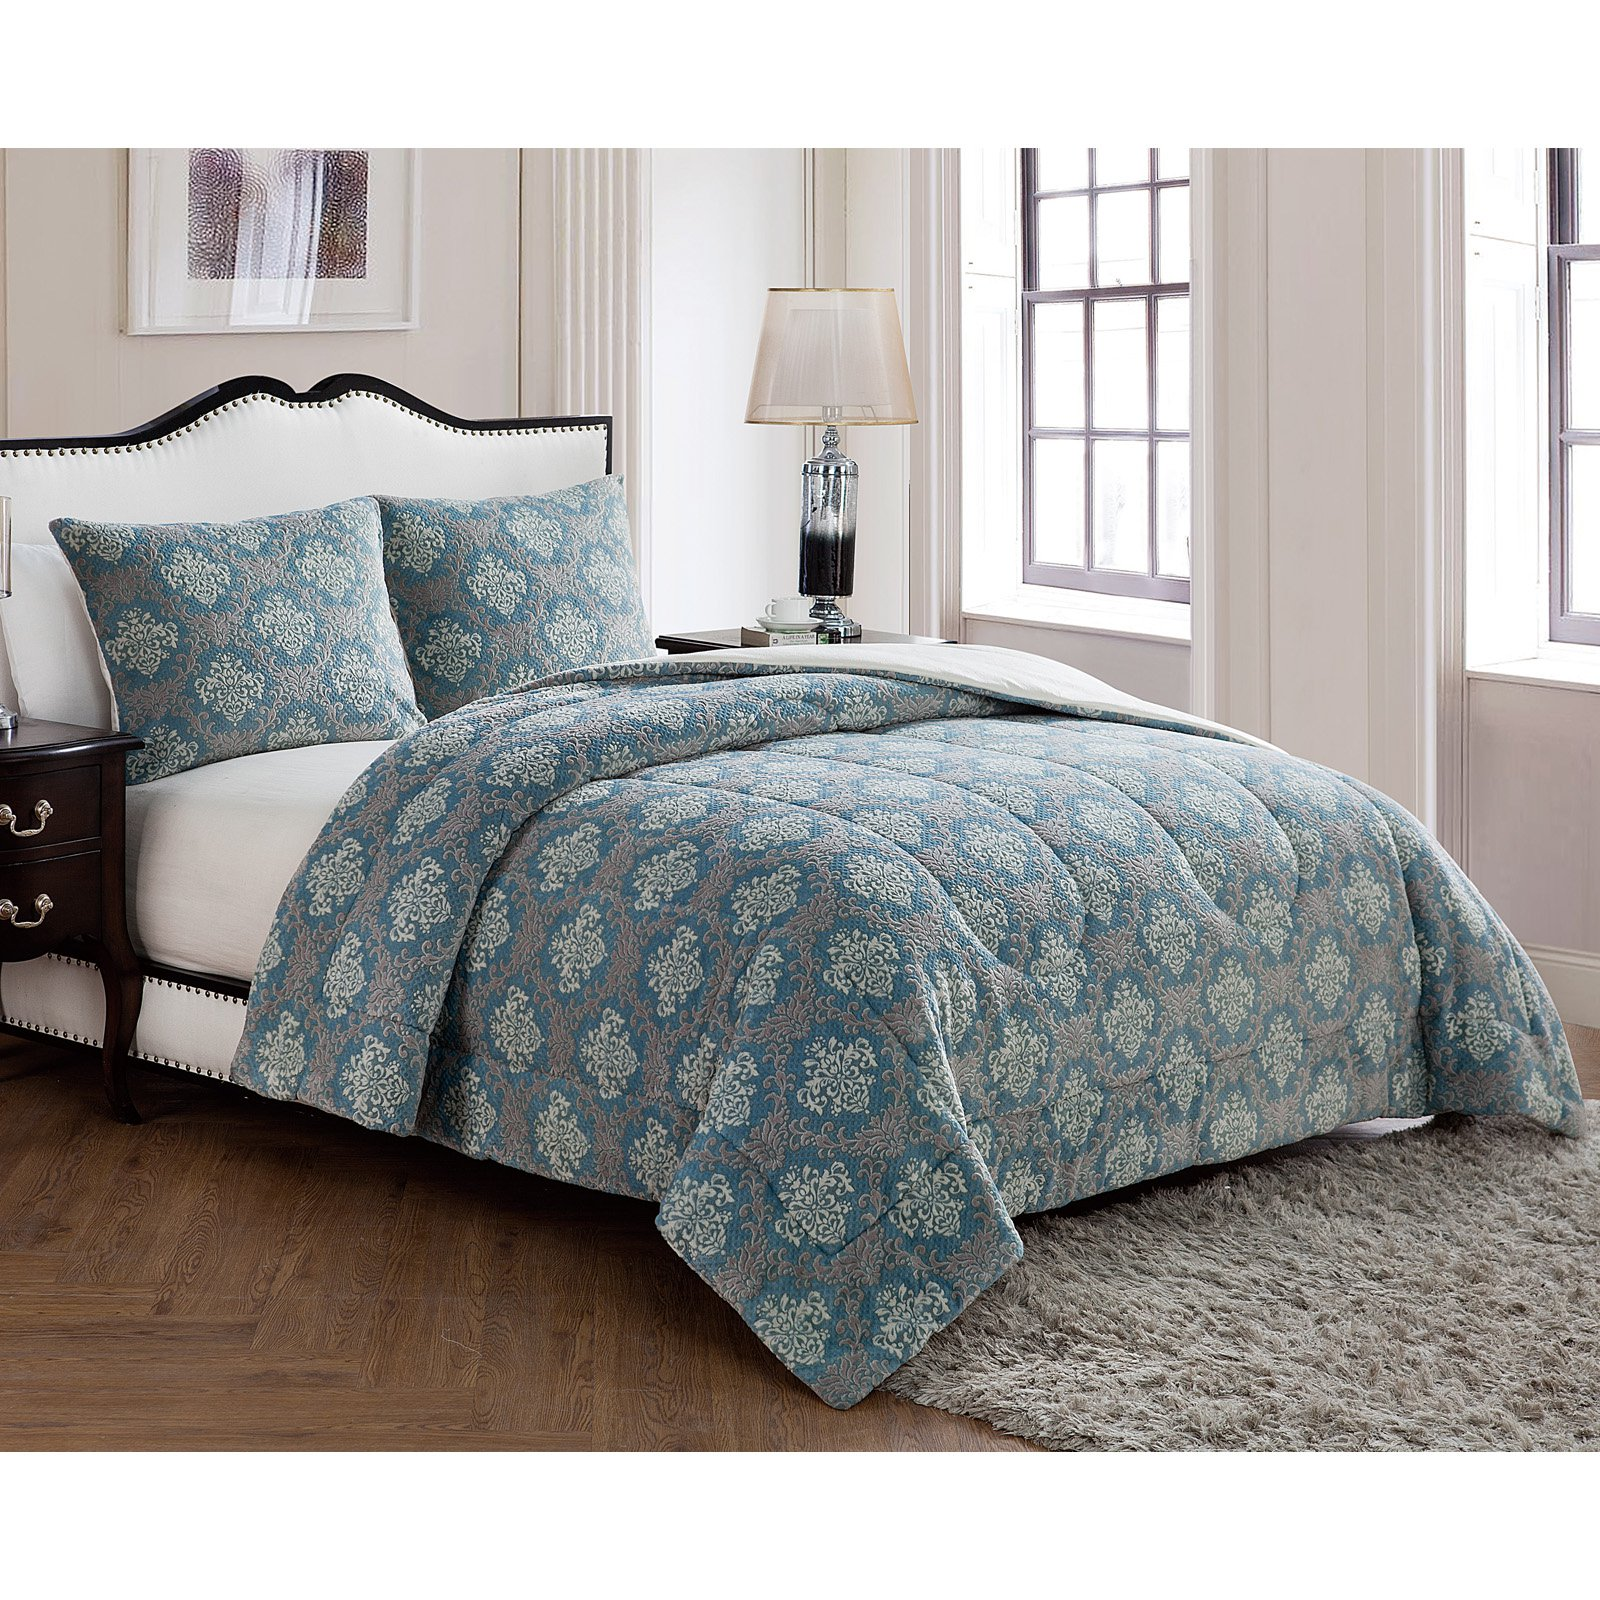 Jaquard Damask 3-Piece Comforter Set